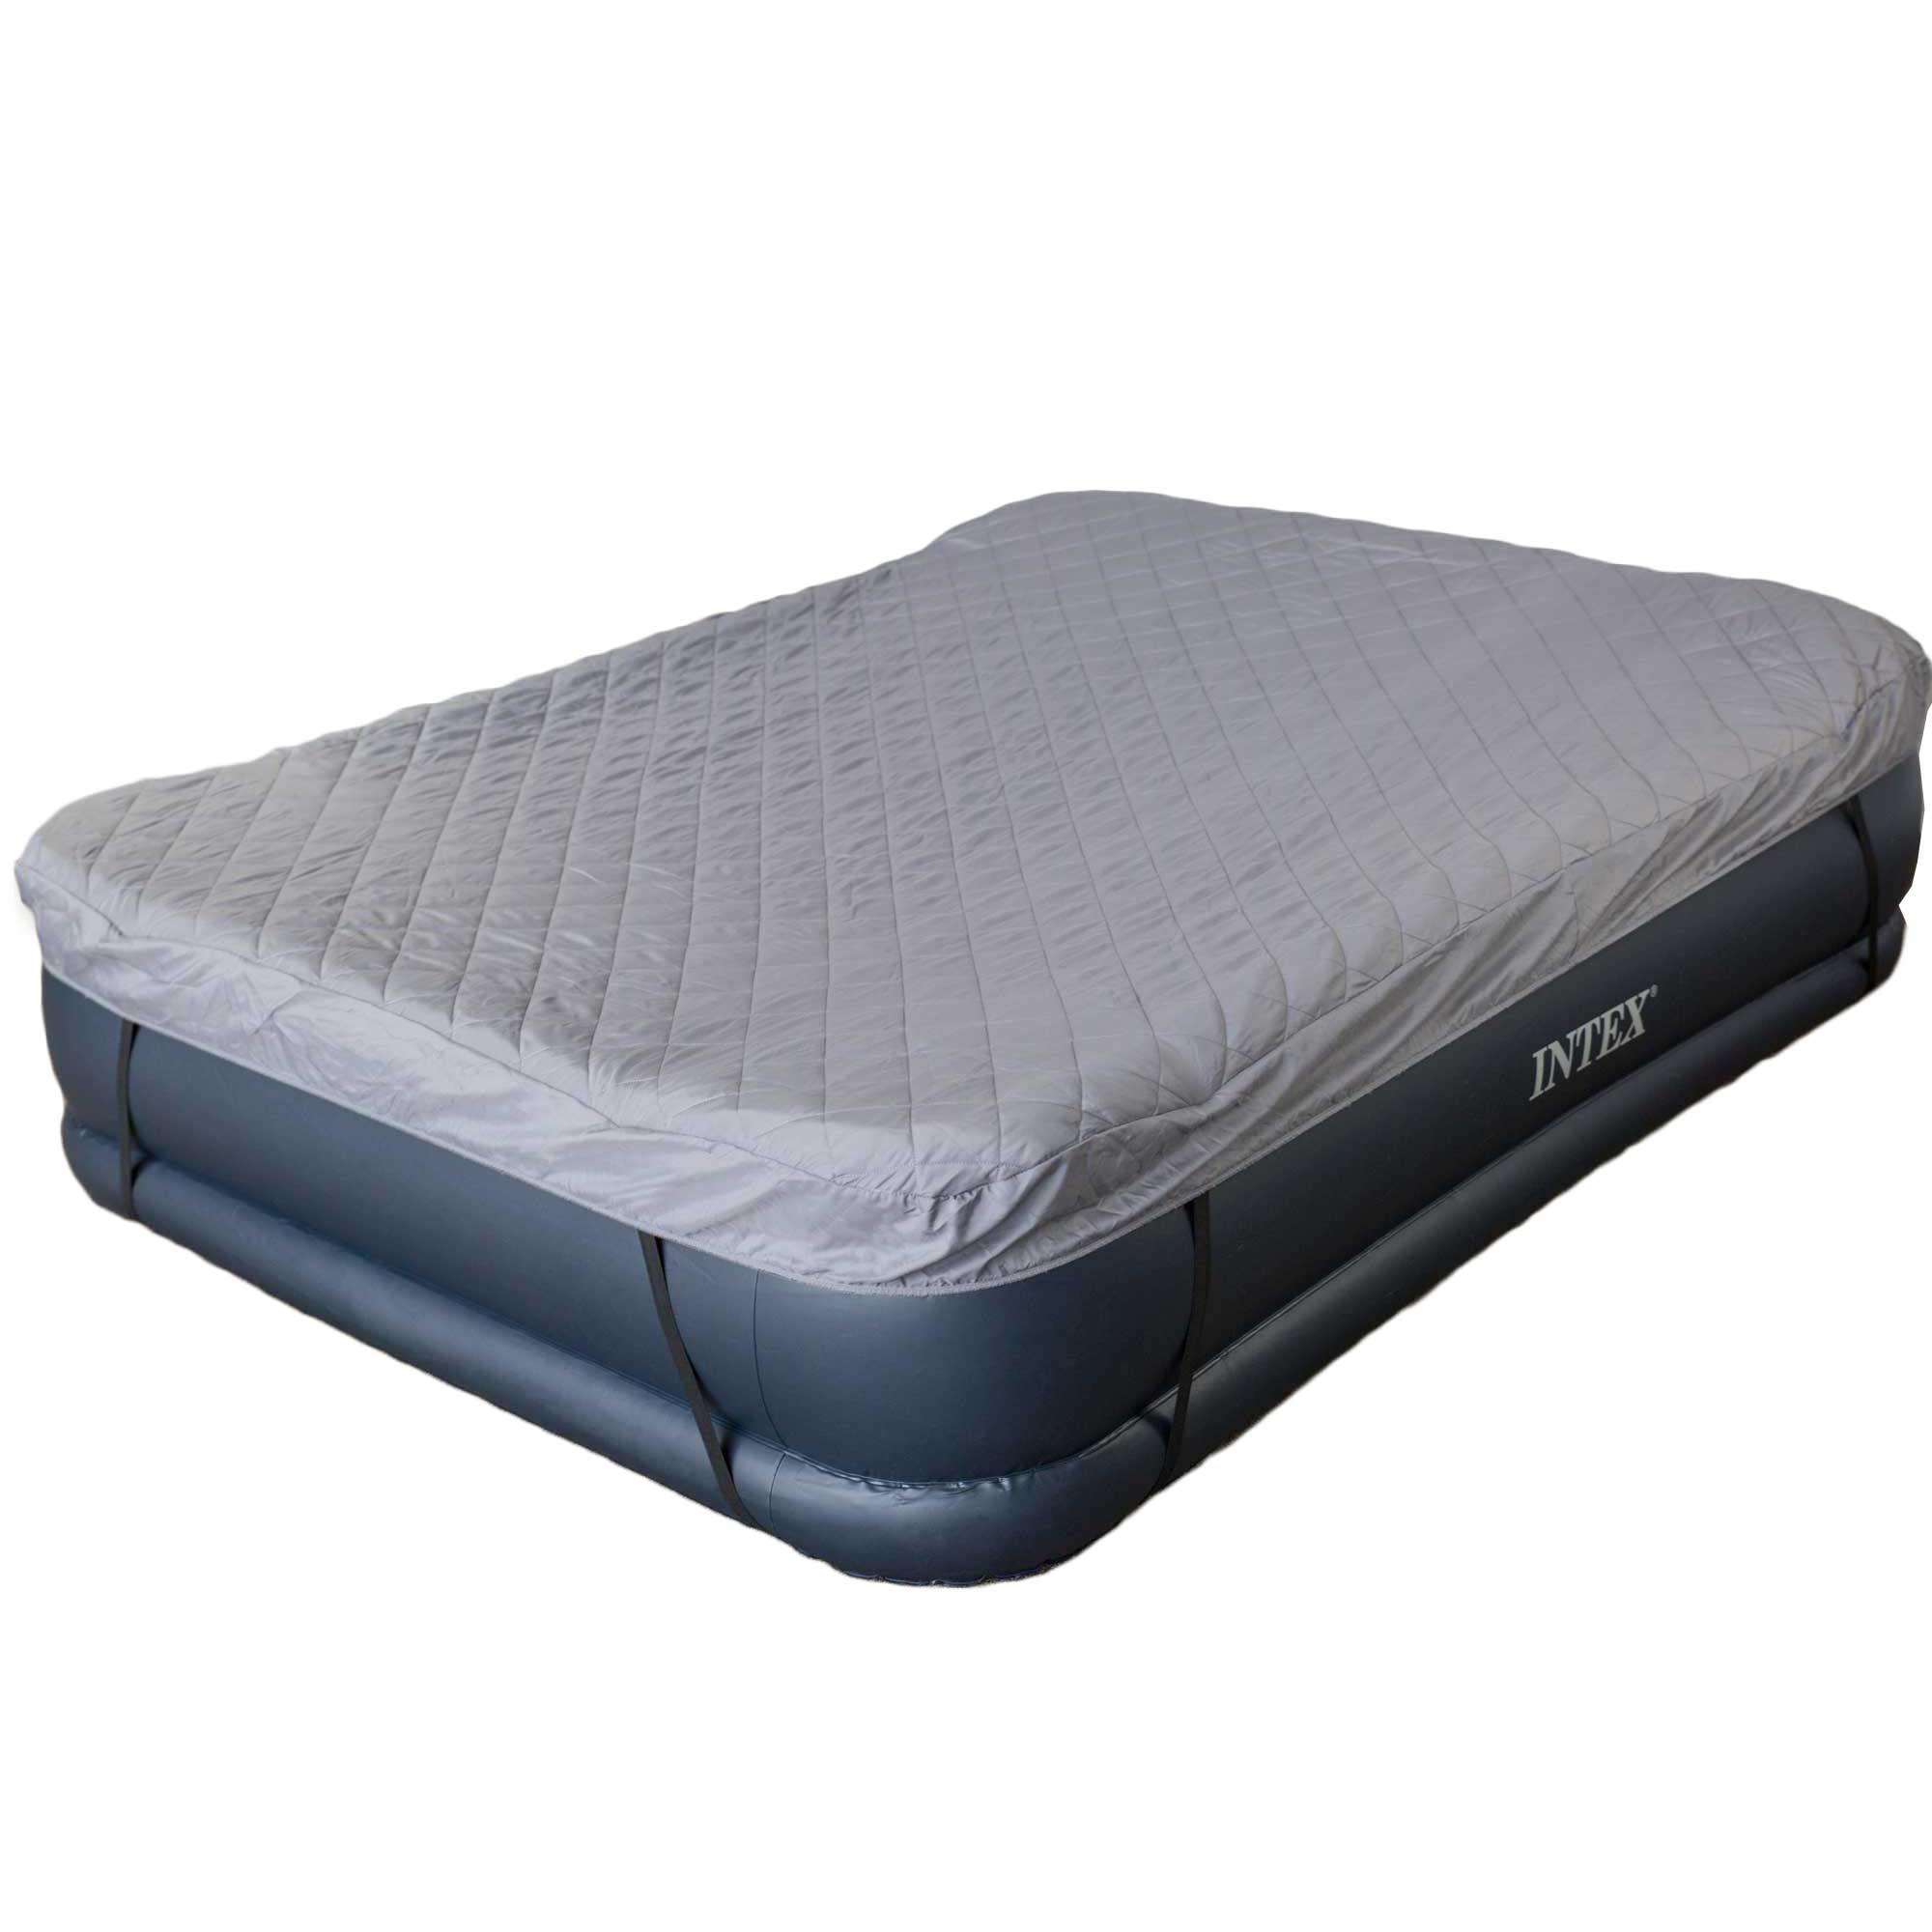 Intex Deluxe Queen Raised Pillow Air Mattress with Built-In Pump + Quilted Cover